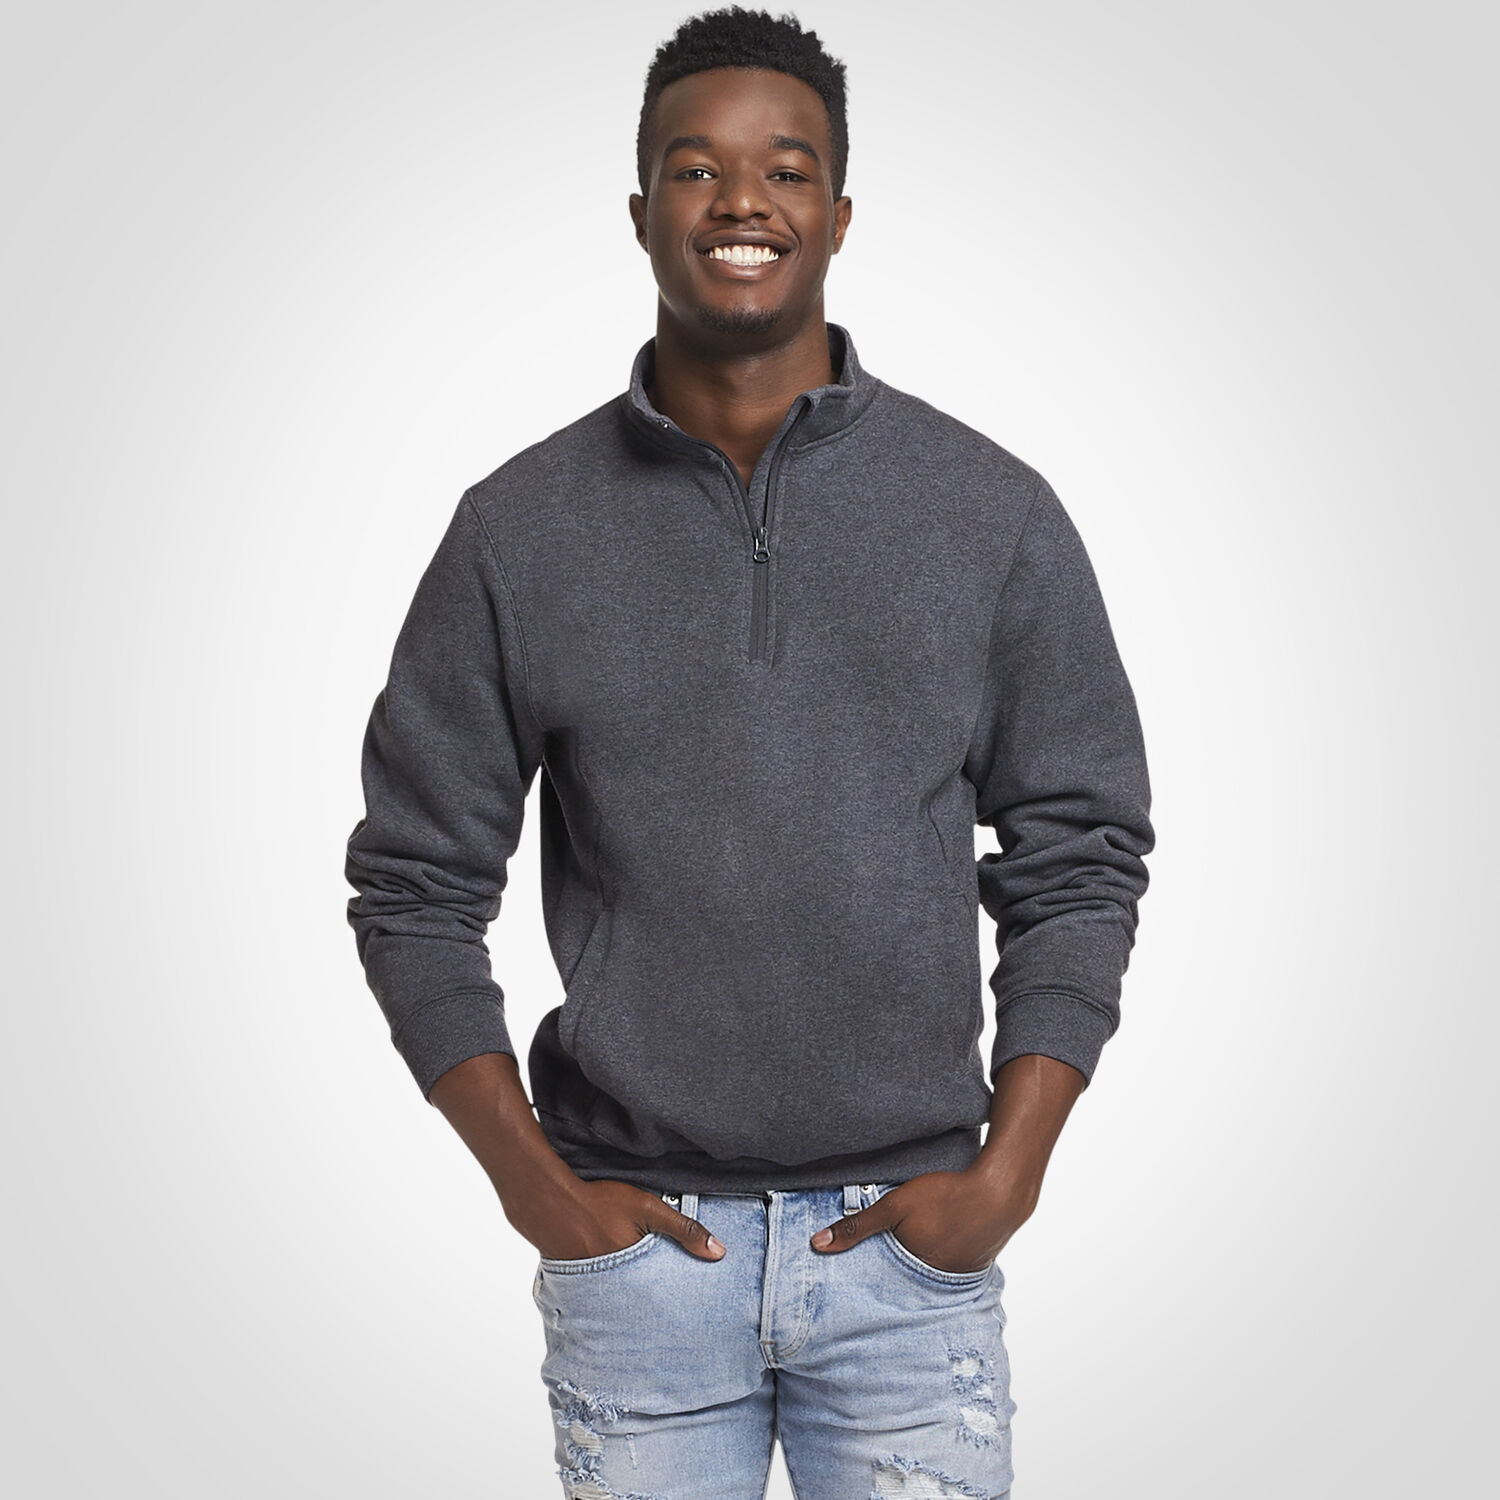 Mens Dri Power Fleece 14 Zip Pullover Russell Us Russell Athletic